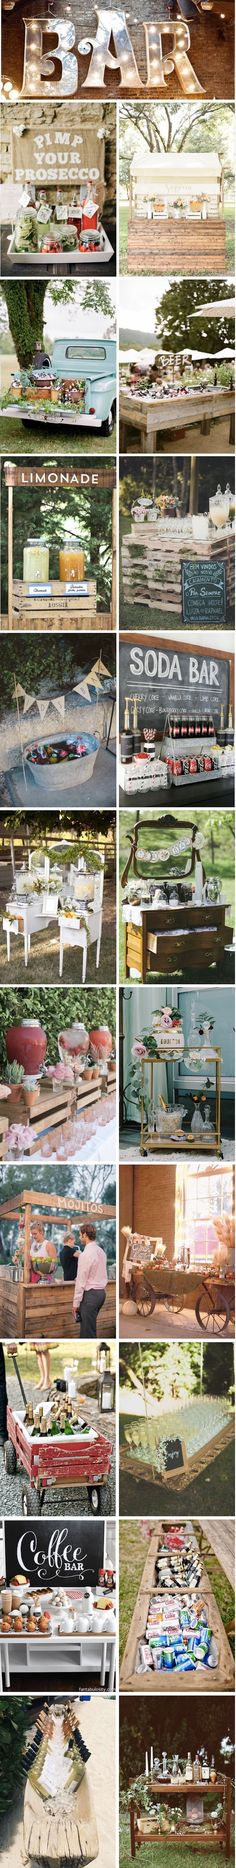 After the great fashion of the Candy Bar, the brides discovered the new trend to have fun . French Wedding, Diy Wedding, Rustic Wedding, Dream Wedding, Wedding Day, Wedding Reception Themes, Wedding Decorations, Drinks Wedding, Self Service